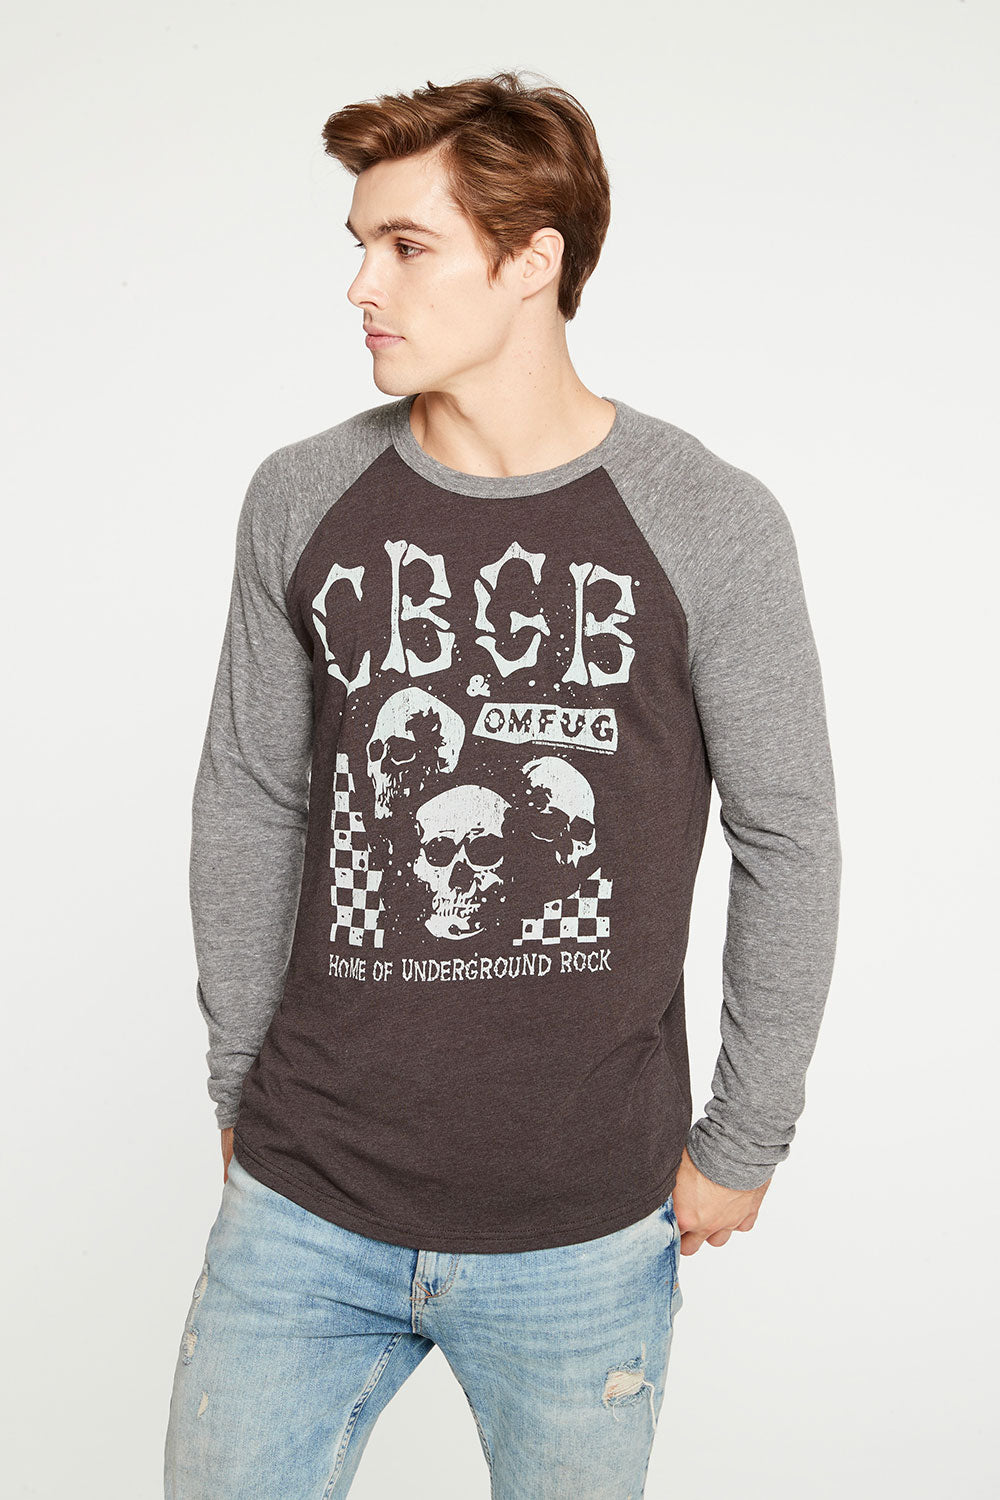 CBGB - Checkered Skulls RECYCLED - chaserbrand